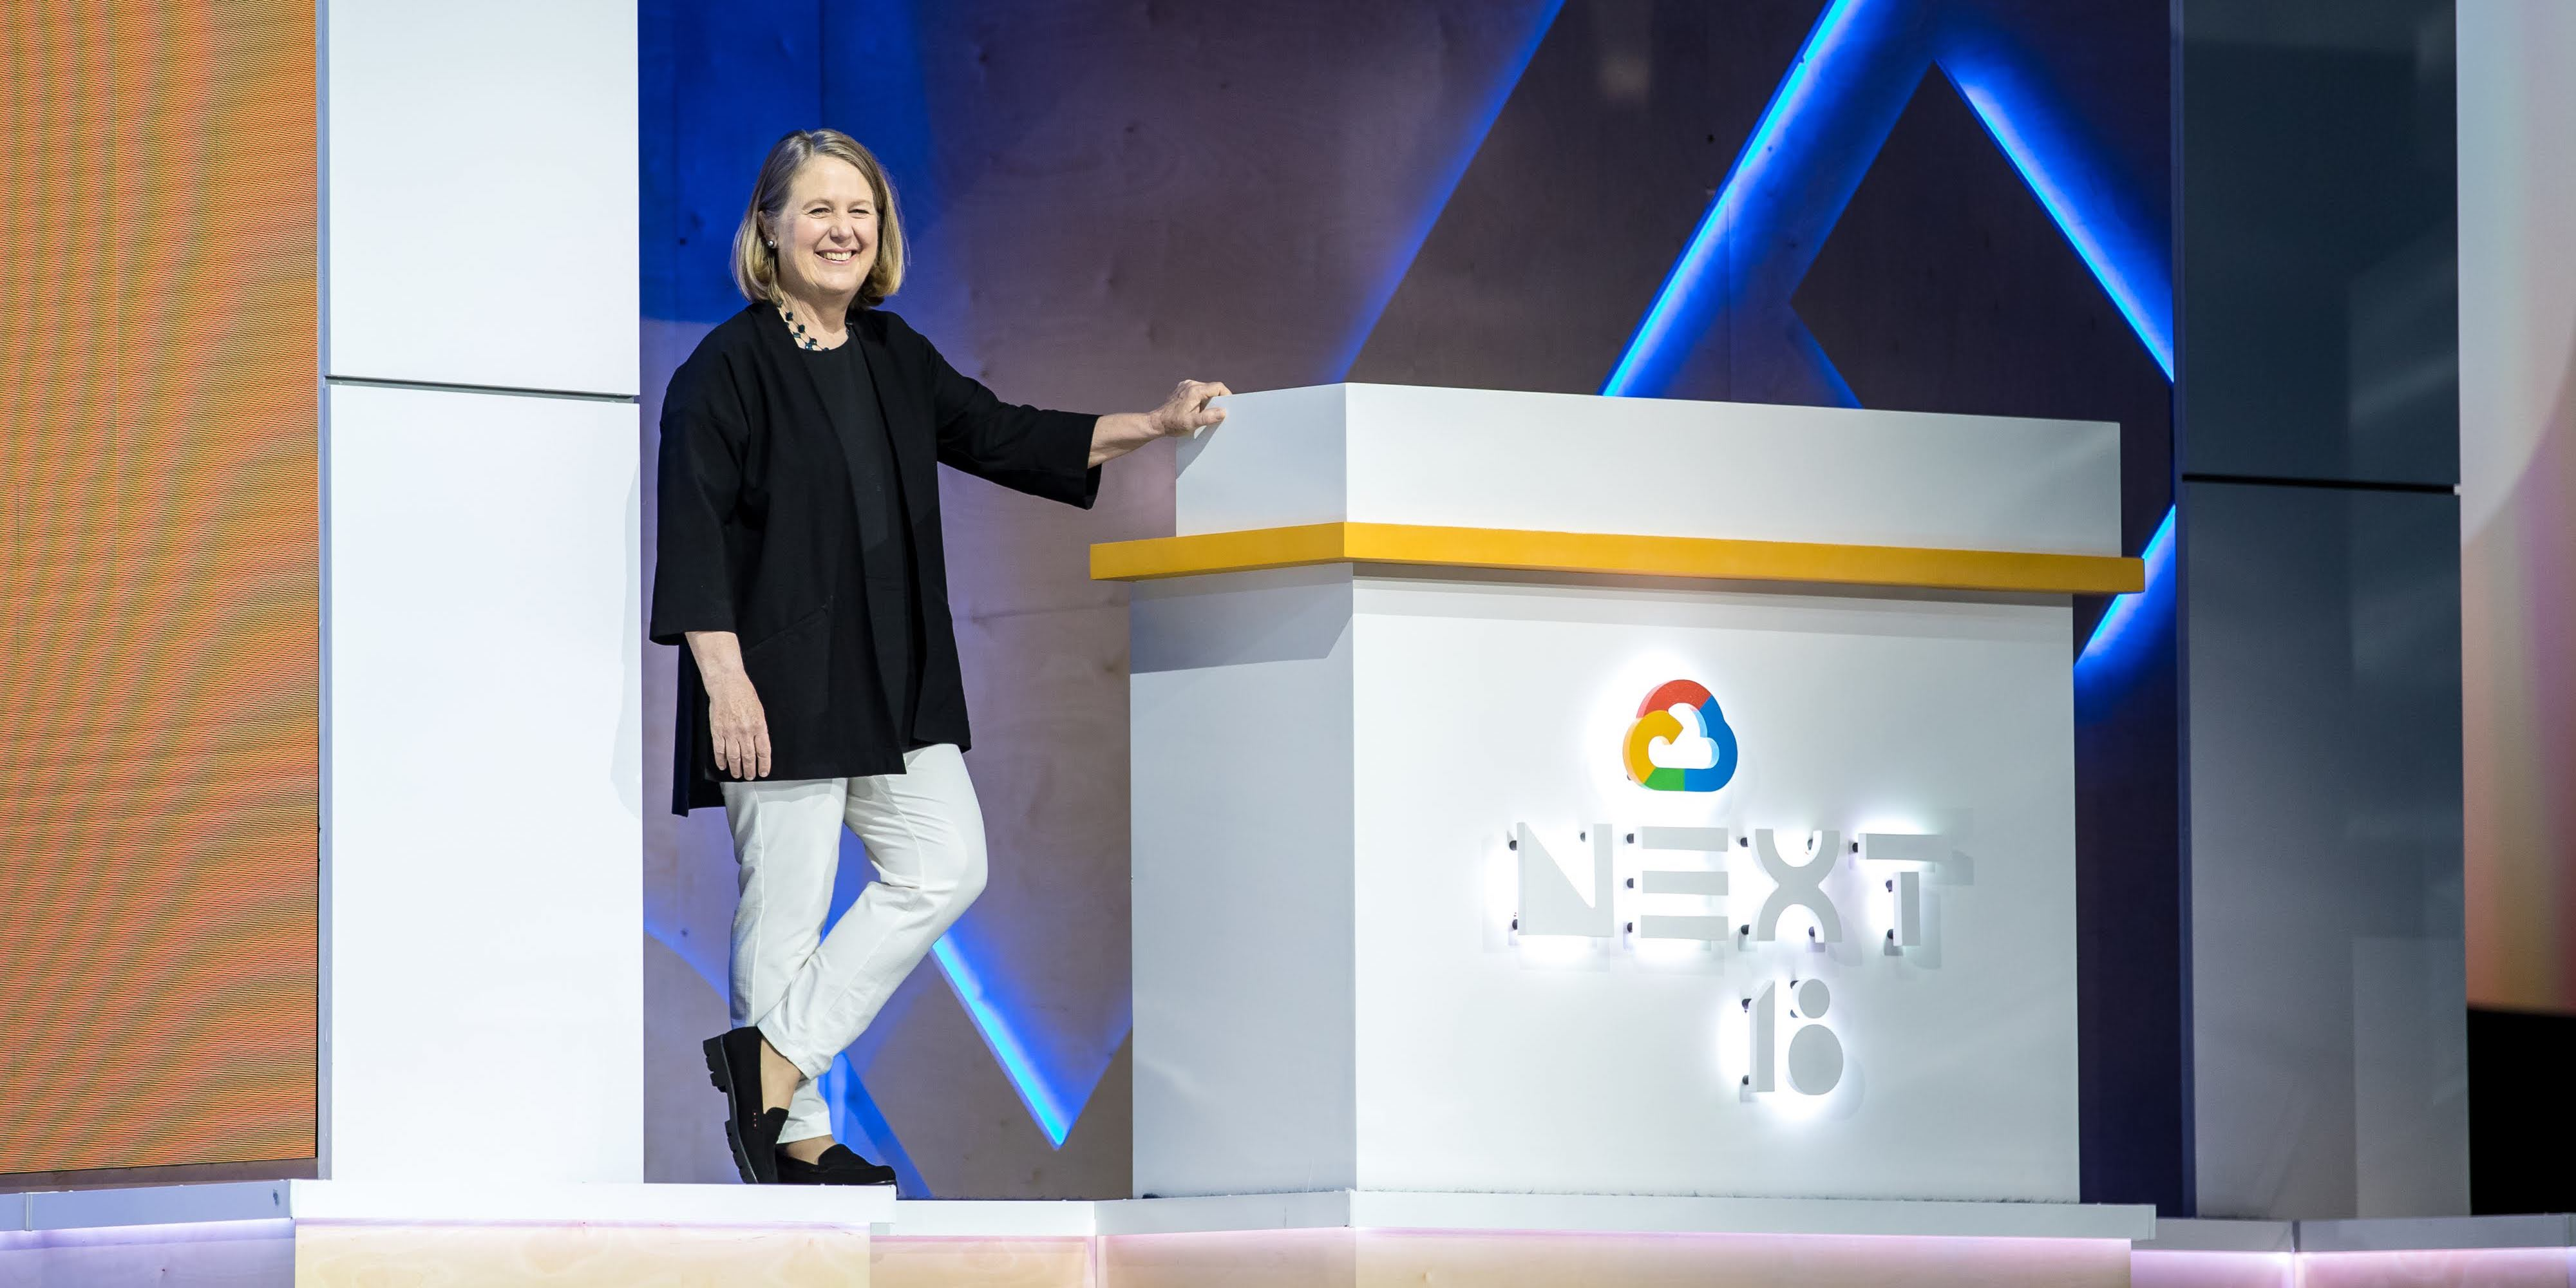 Google Cloud CEO Diane Greene leaving in January, Oracle president taking over